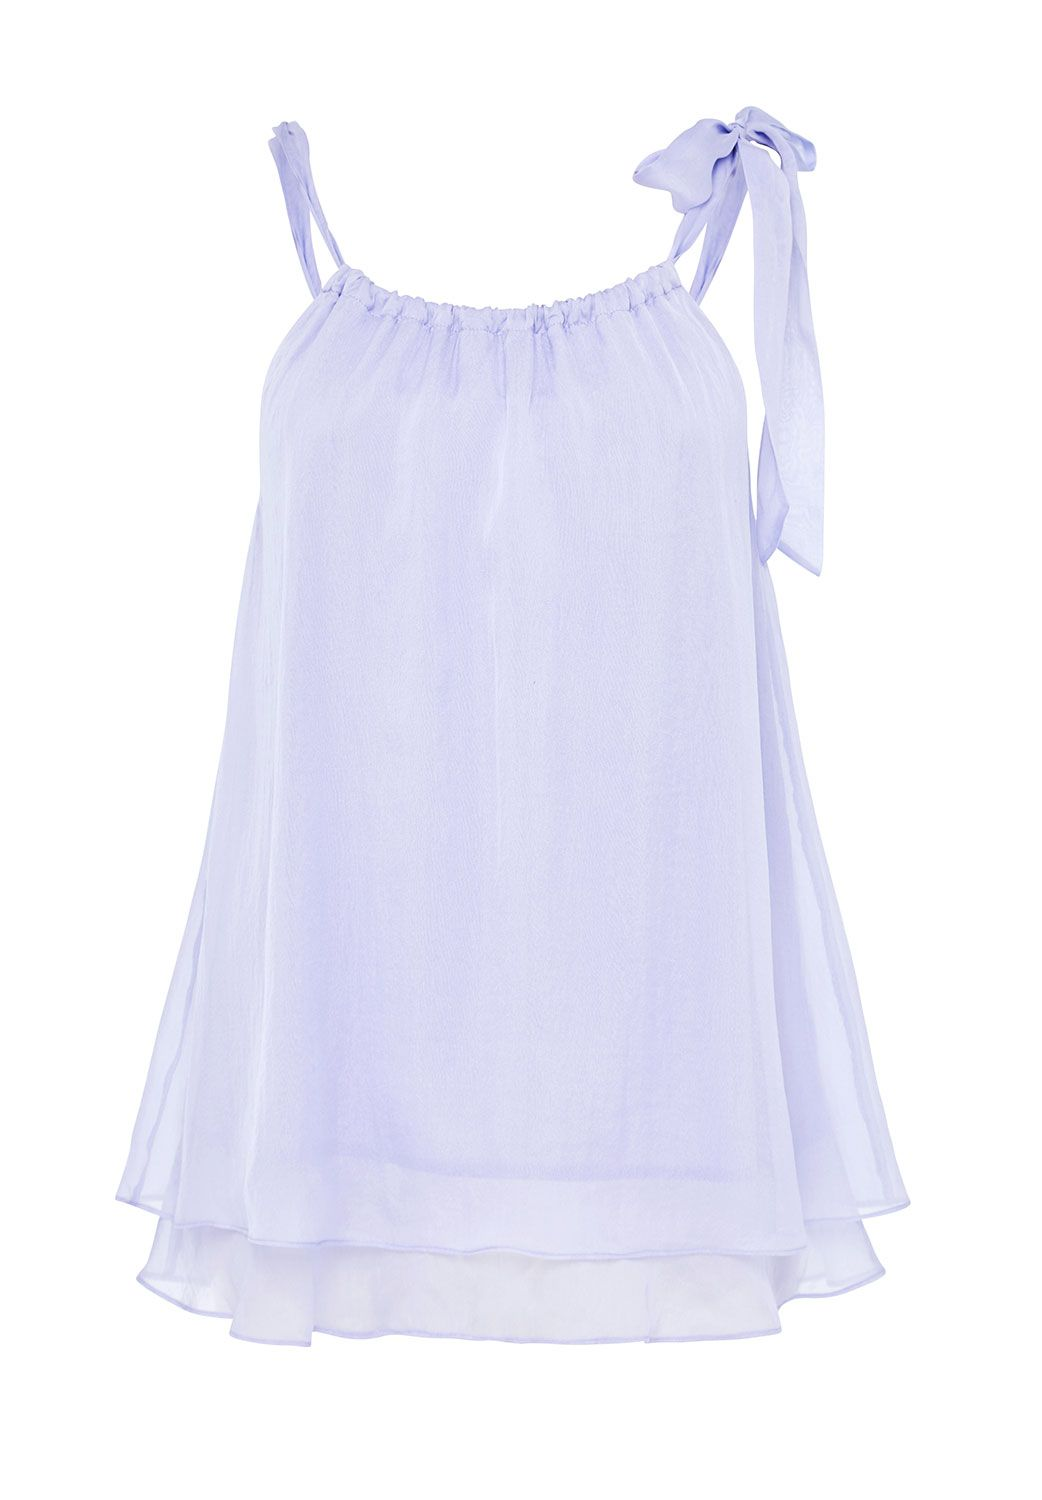 Hallhuber A-Line Top Made Of Silk Chiffon, Lilac